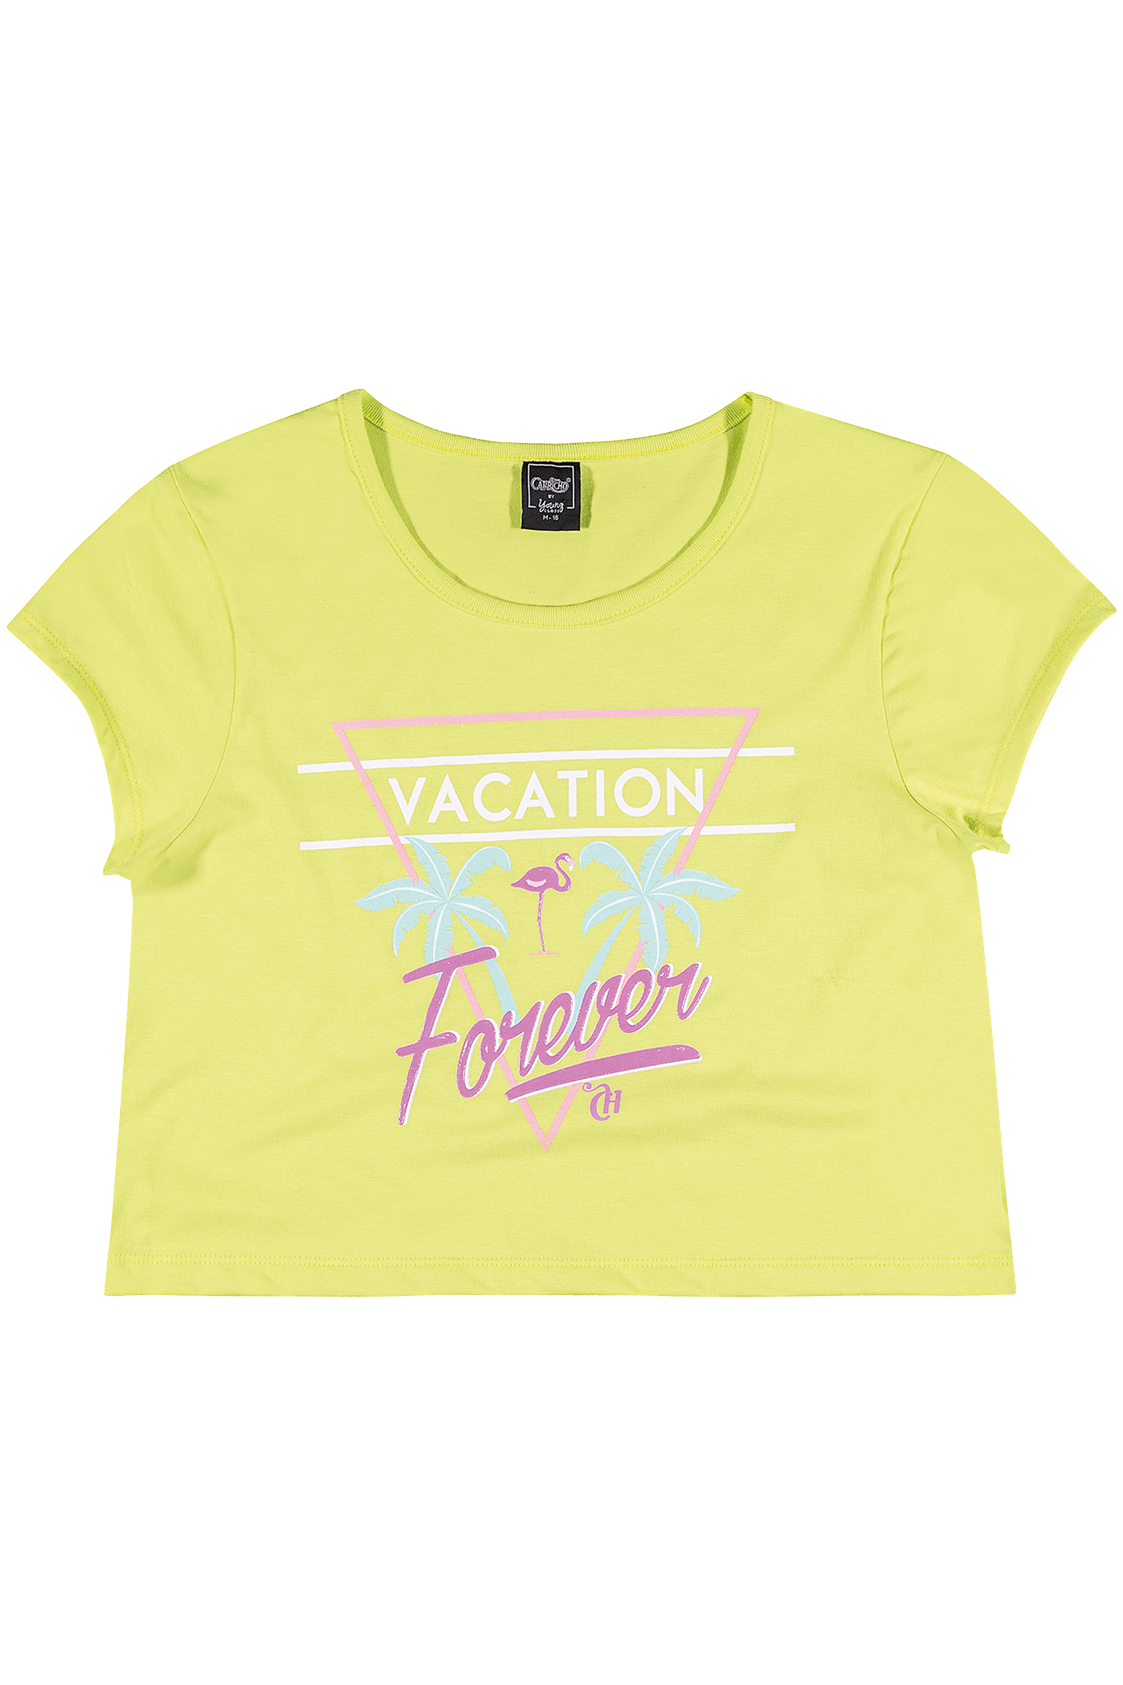 Cropped Vacation Forever verde CAPRICHO para Young Class